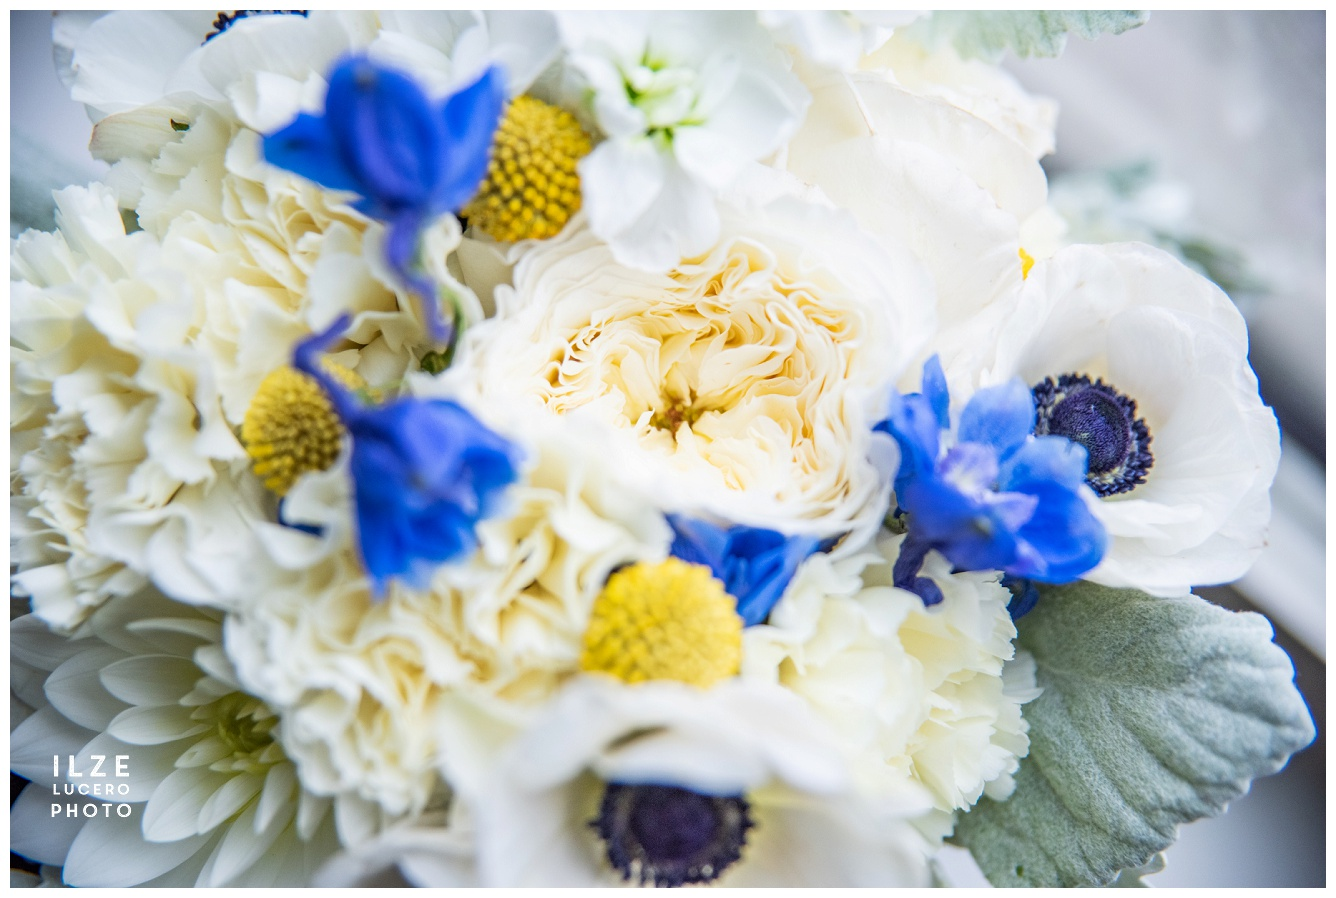 DSC_6372.jpgWhite Blue and Yellow wedding flowers